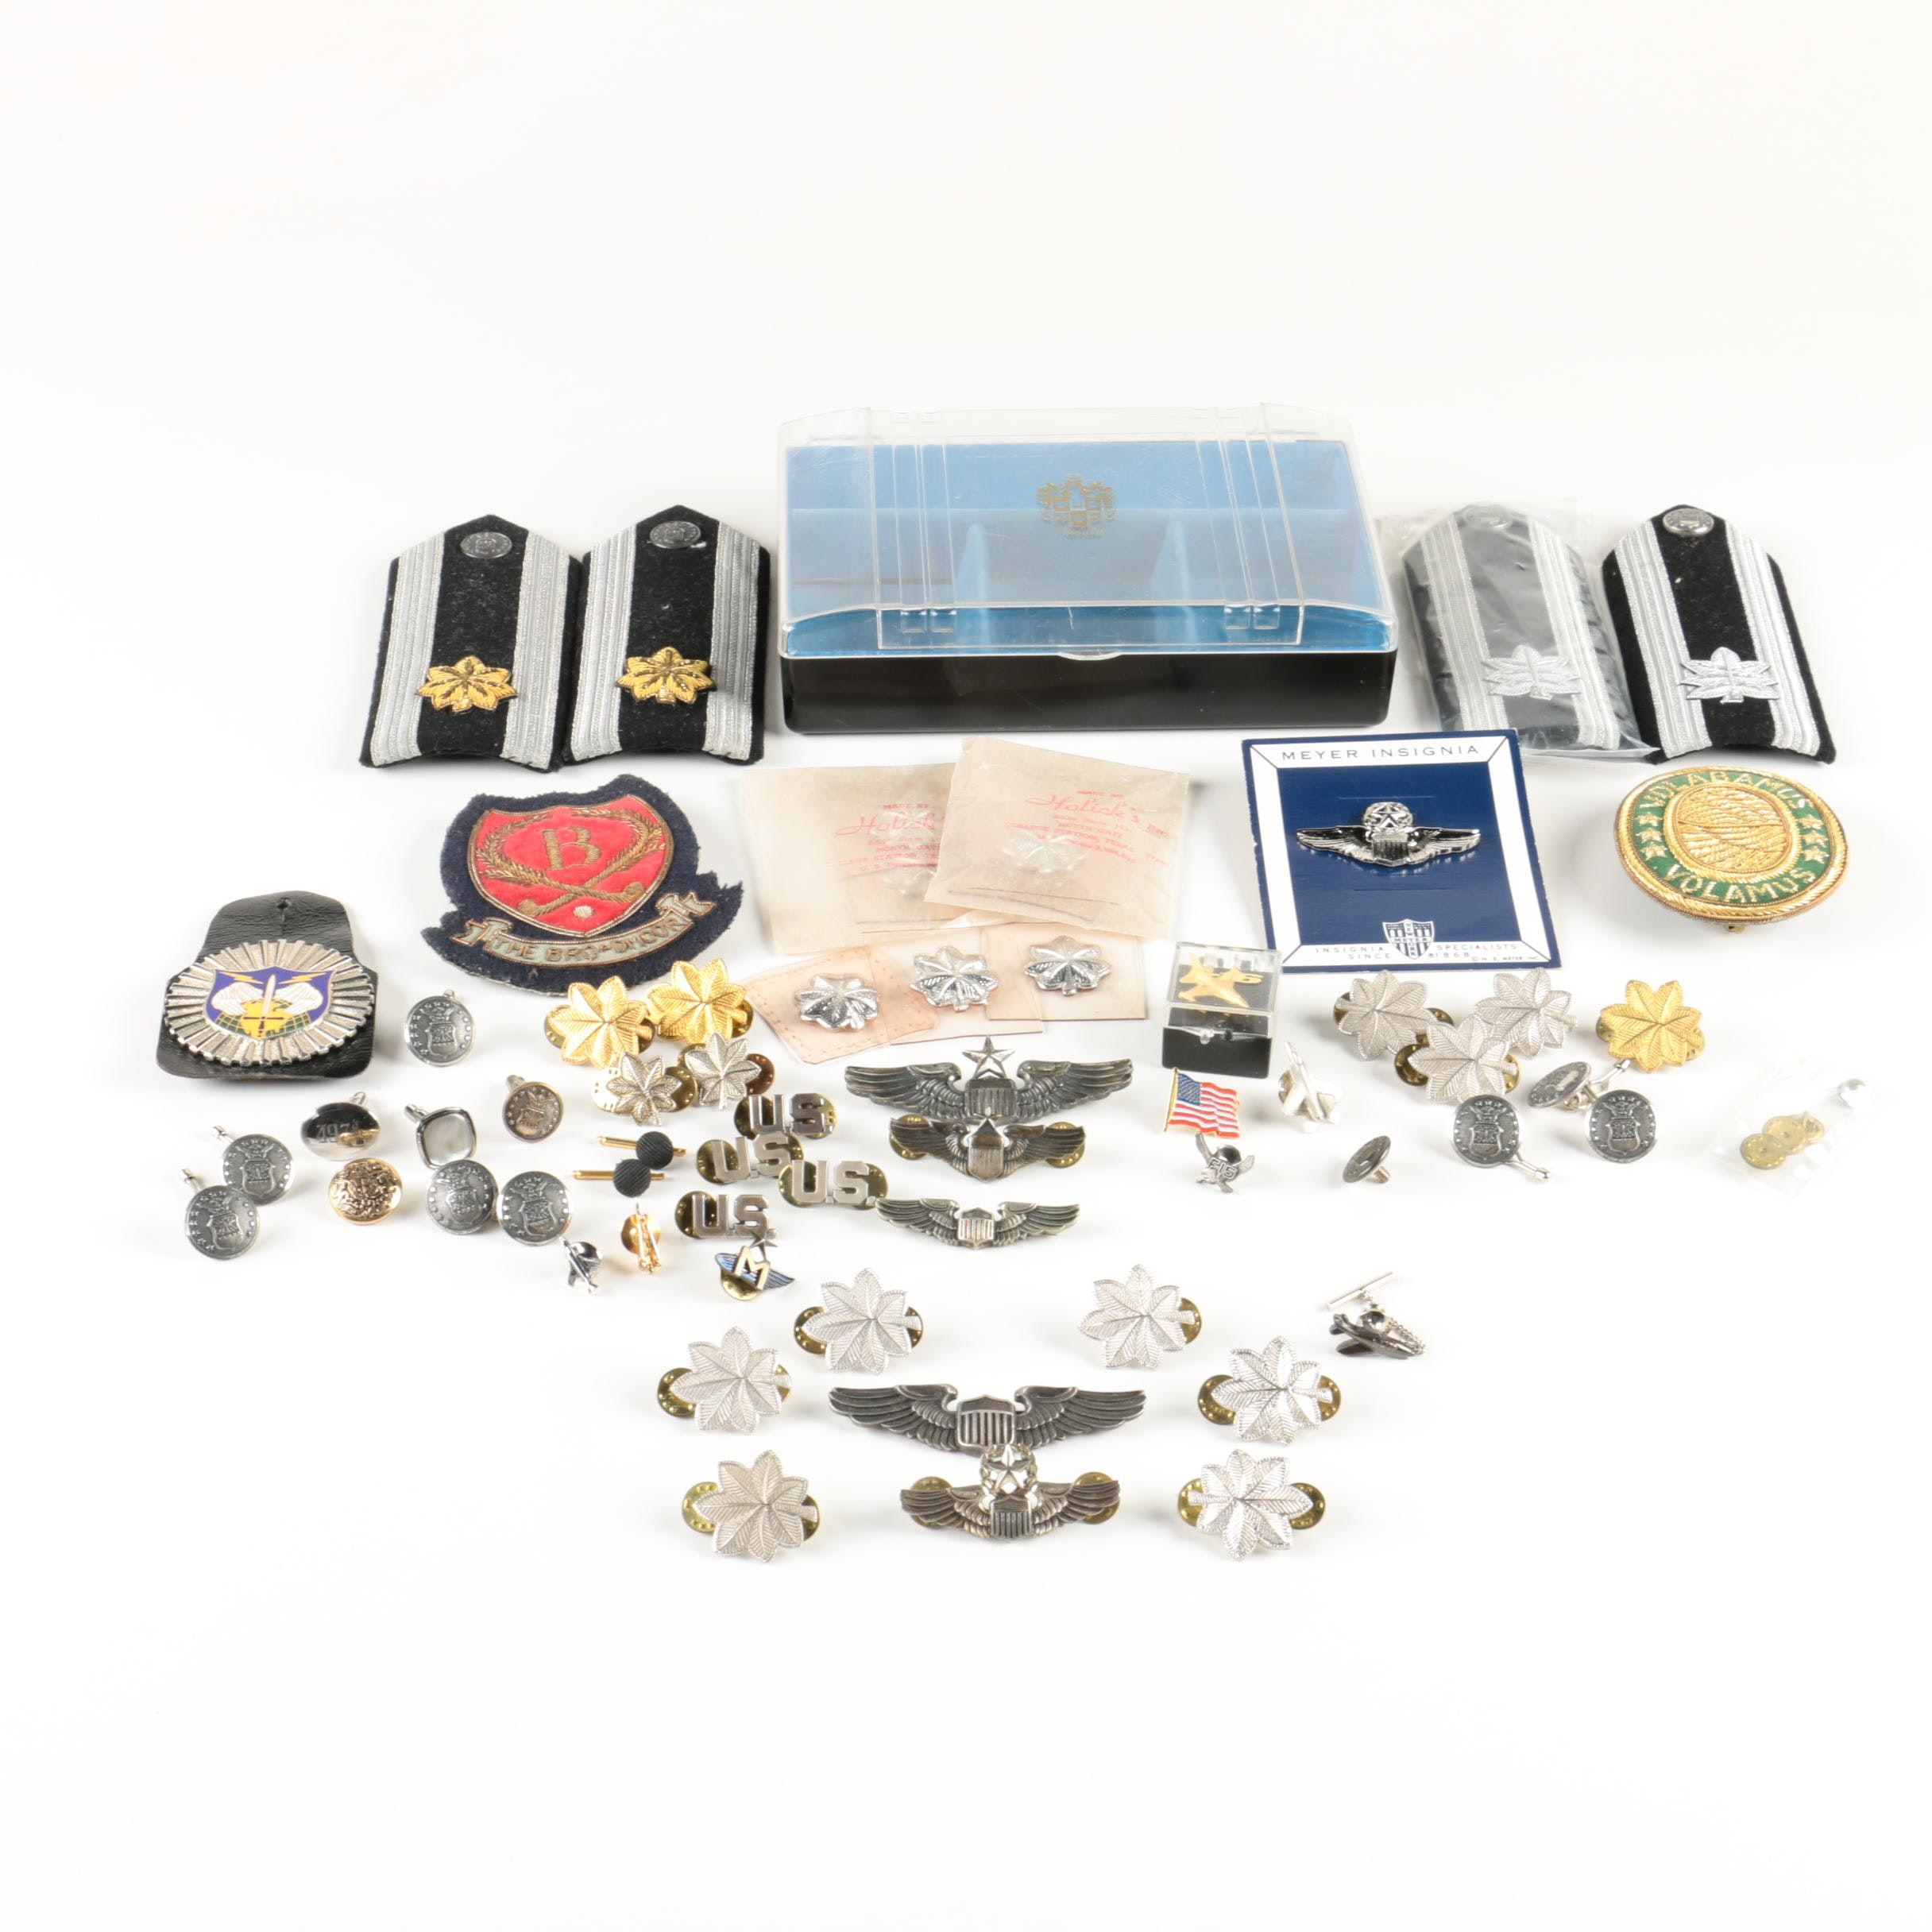 U.S. Armed Forces Sterling Silver and Metal Insignias, Pins and More